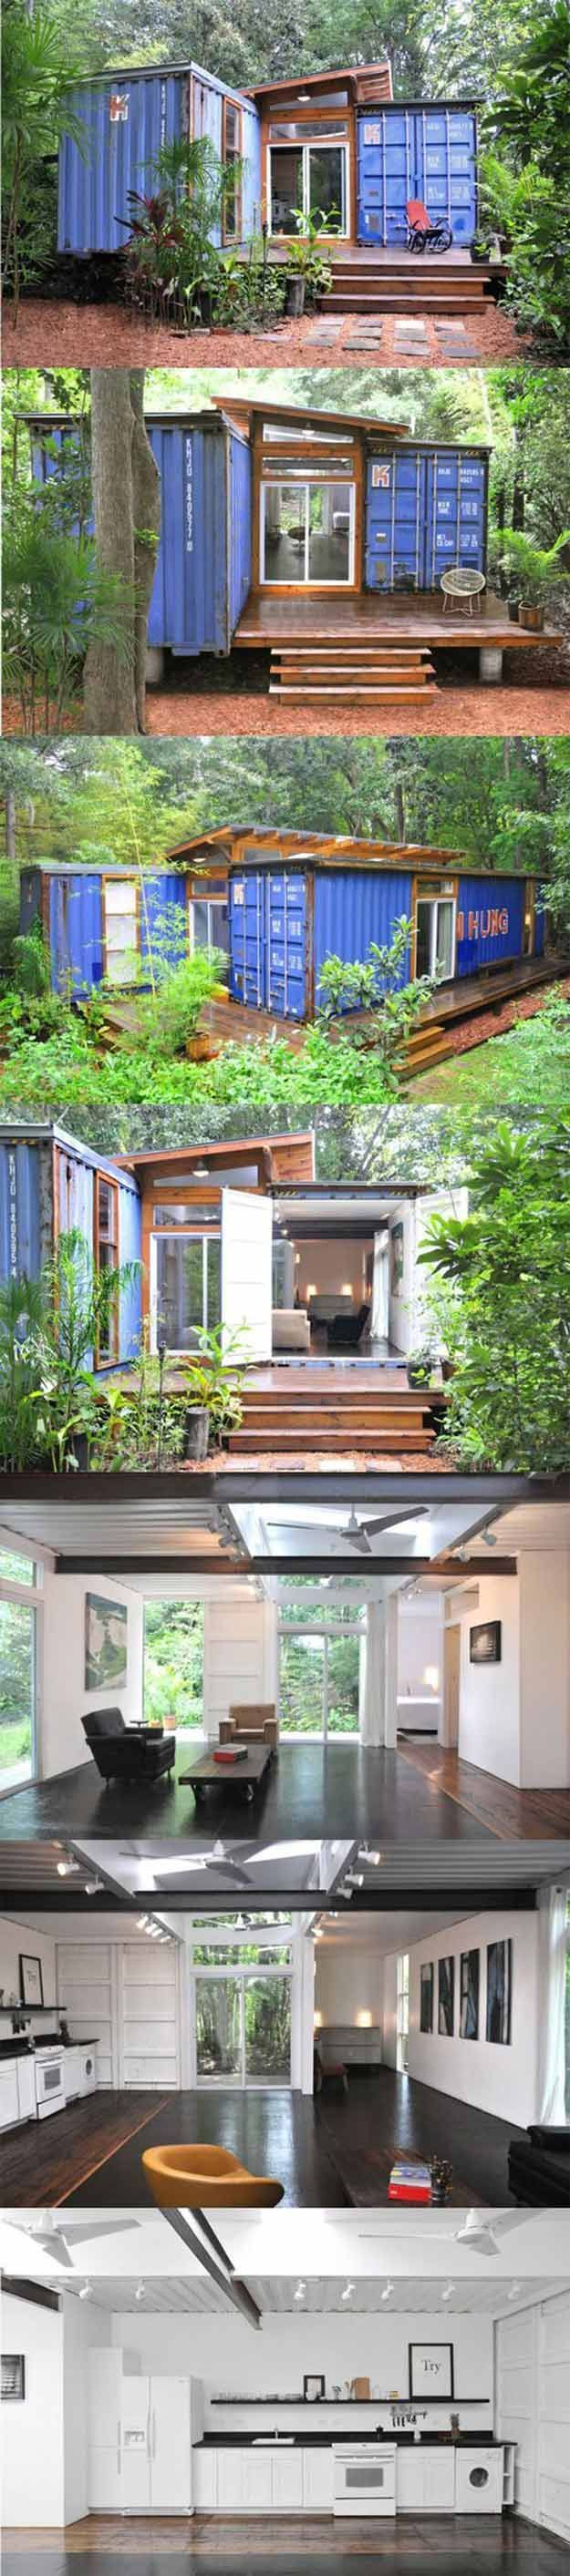 Best Kitchen Gallery: 322 Best Container Architecture Images On Pinterest Container of Fallout Shelter Built From Shipping Containers on rachelxblog.com